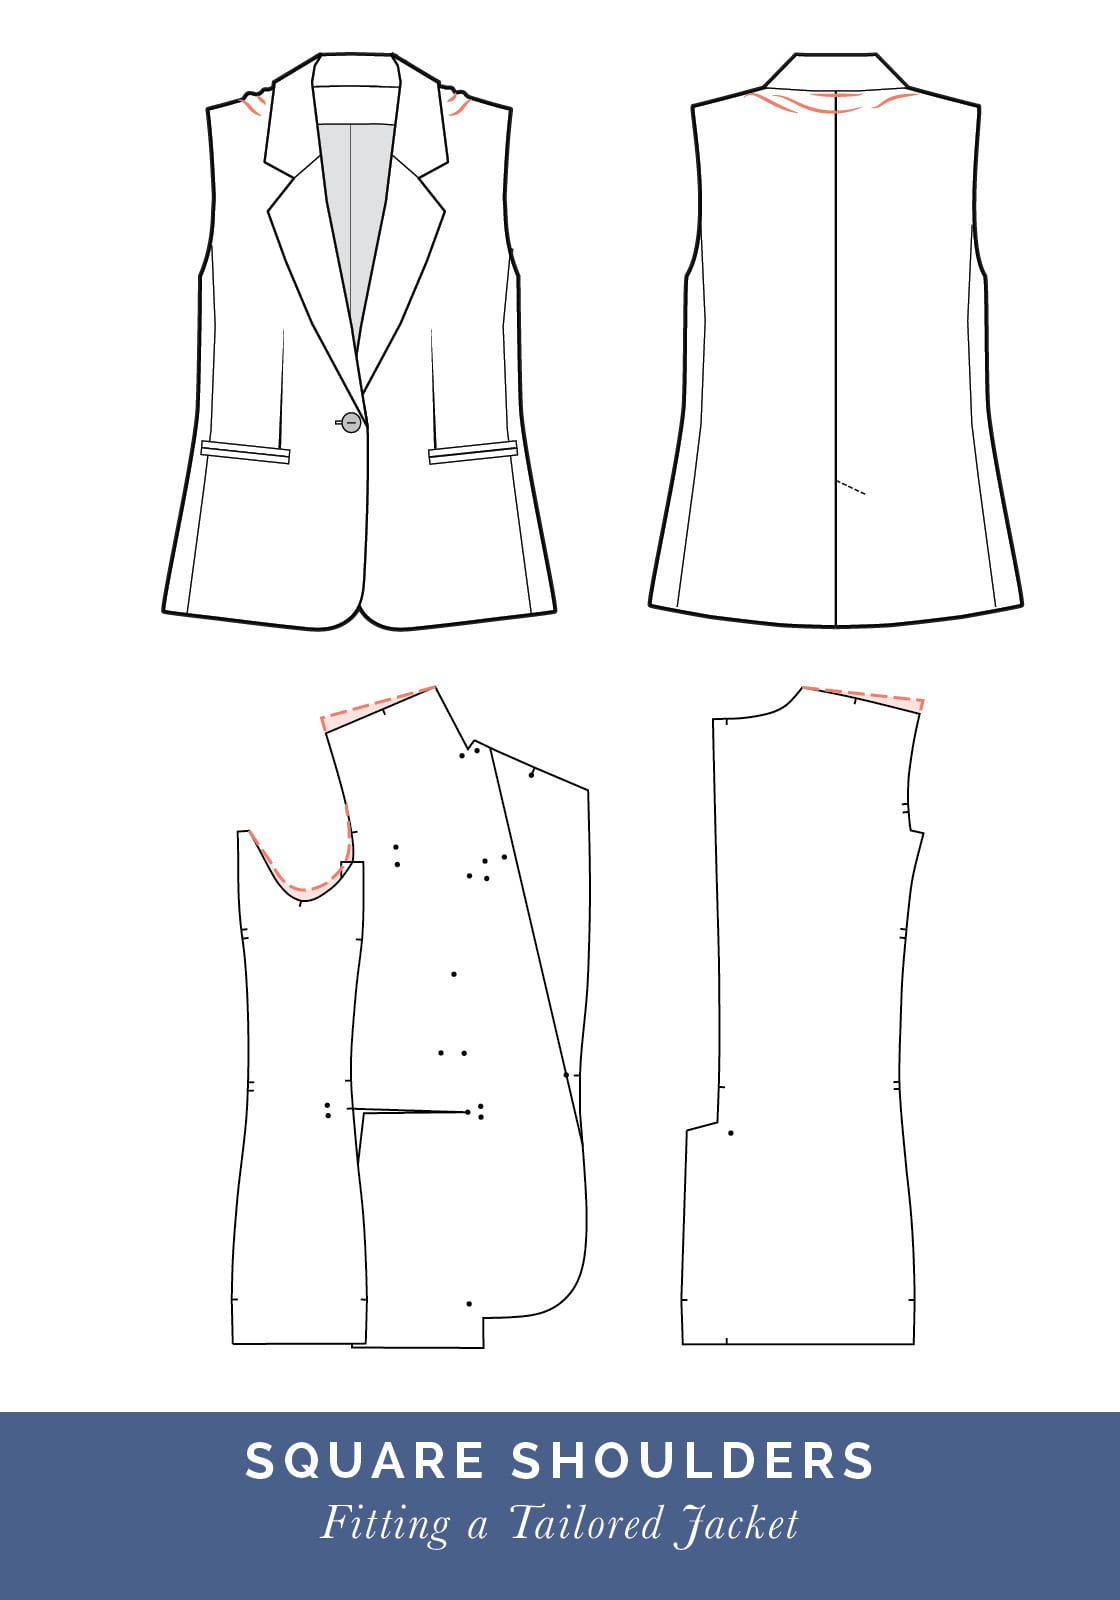 Square shoulder adjustment // How to fit a Tailored jacket or Blazer // Fit adjustment issues and fixes